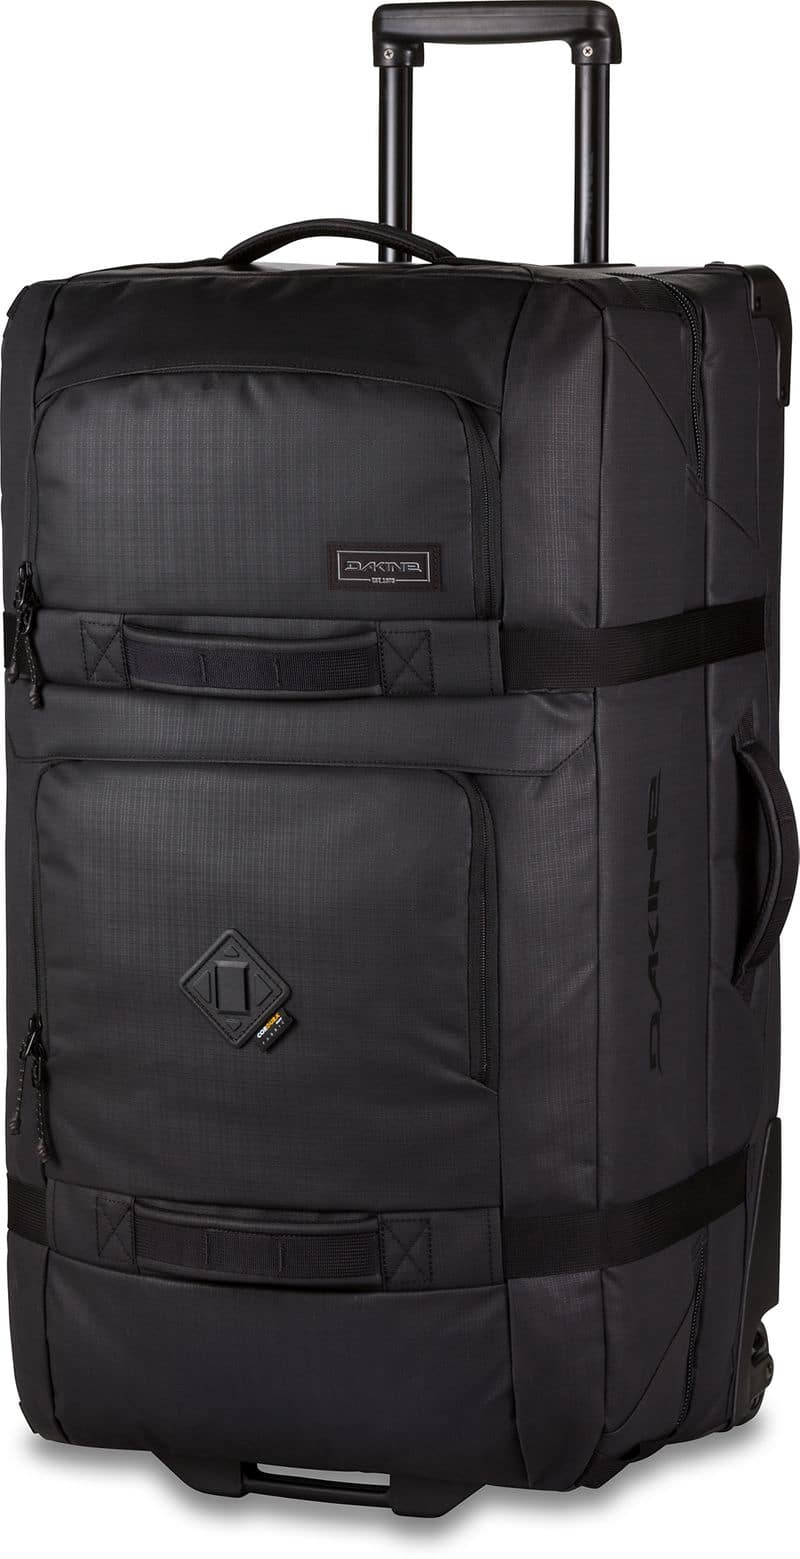 Dakine Split Roller 110L Bag - on sale for $74.99, normally $240.00